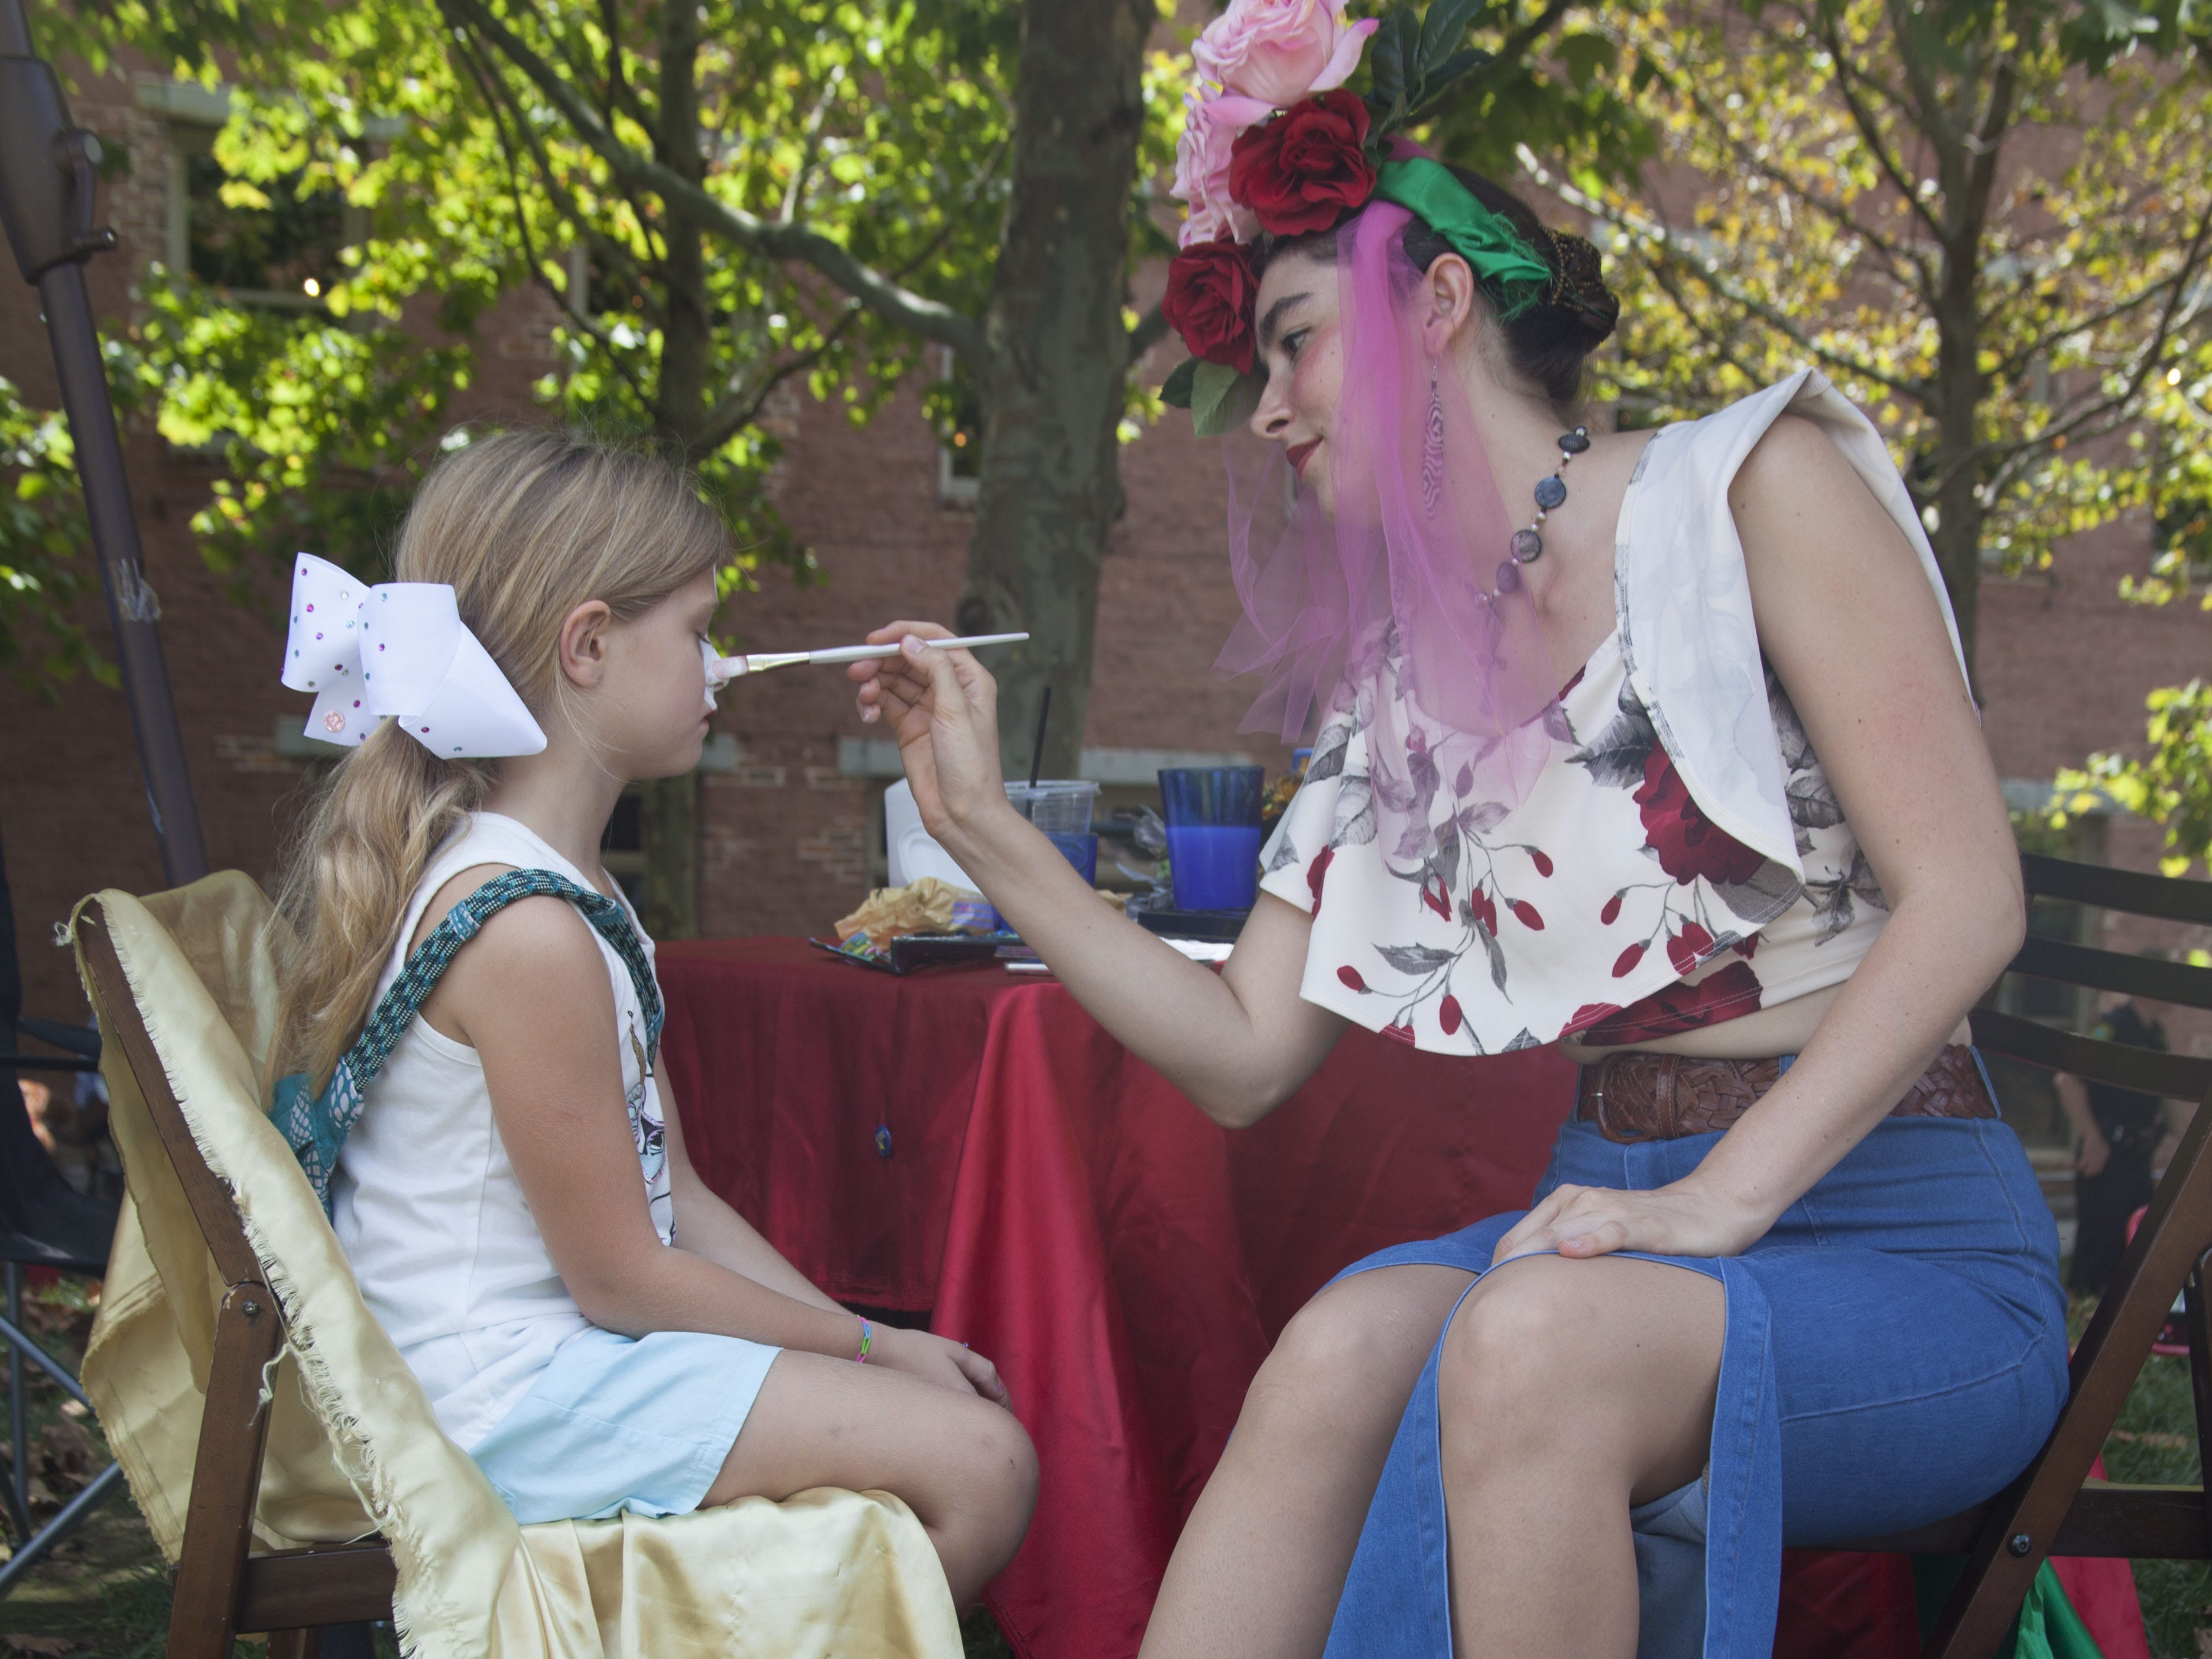 Bonnie Rockwood of The Lady in Red Art paints the face of Madison Gravelle at the 2018 Goombay Festival at the Roger McGuire Green in Pack Square Park on on Sept. 8, 2018.